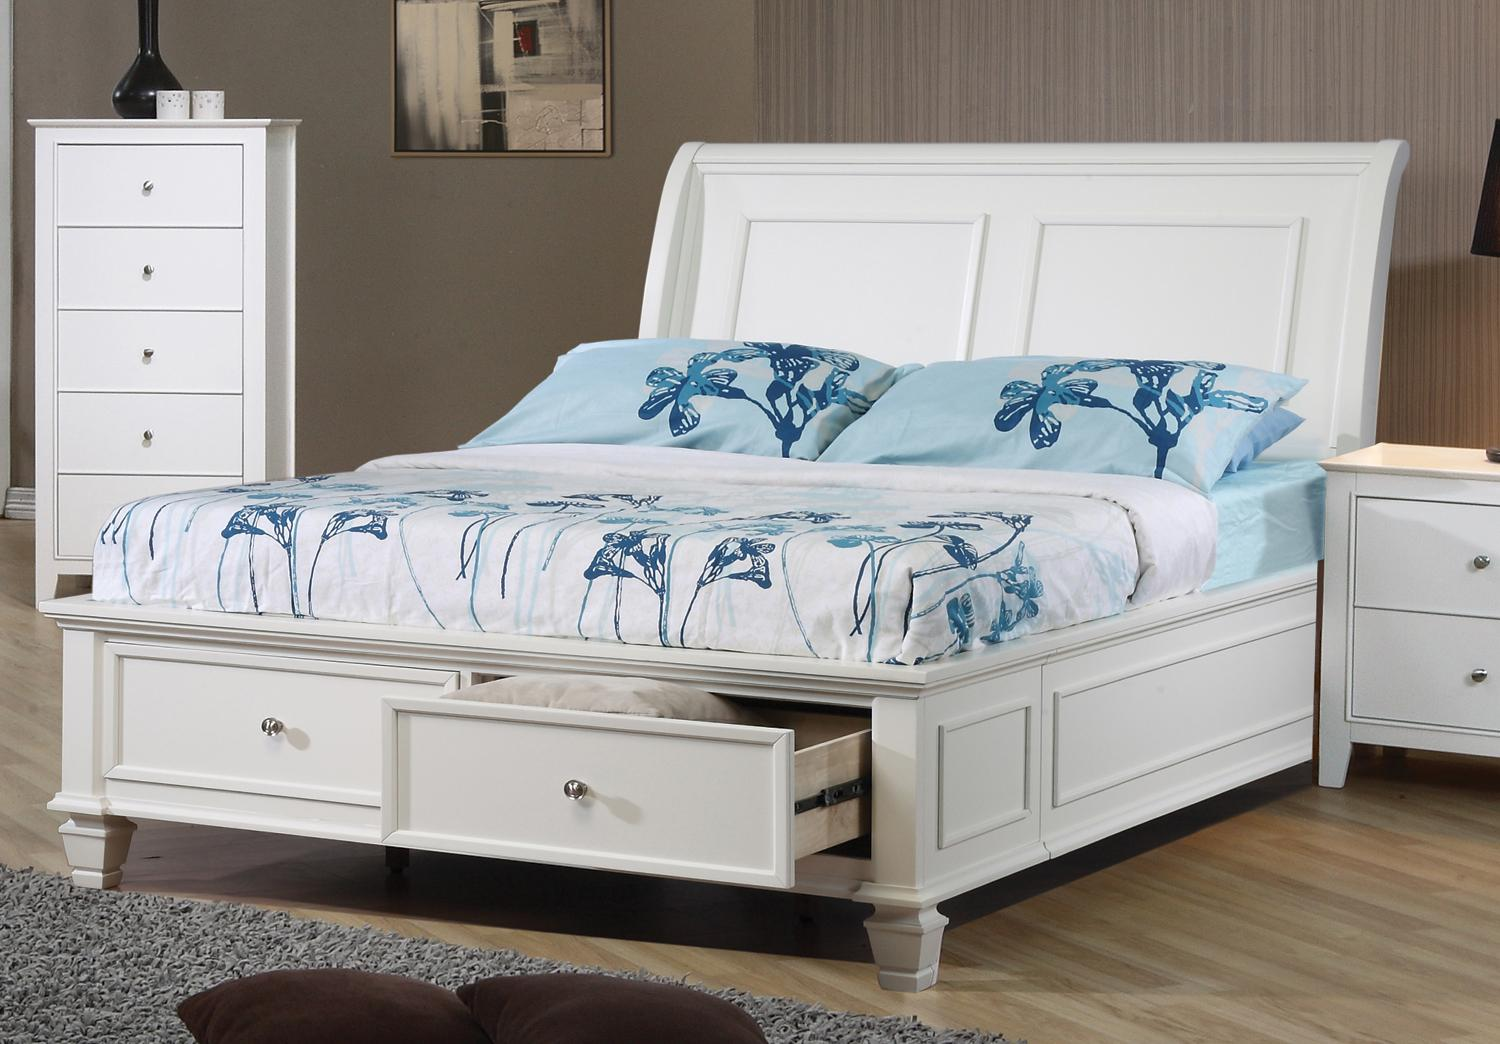 full extention glides and dovetailed storage drawers panel full bed 399 panel twin bed 329 storage full bed 699 storage twin bed 599